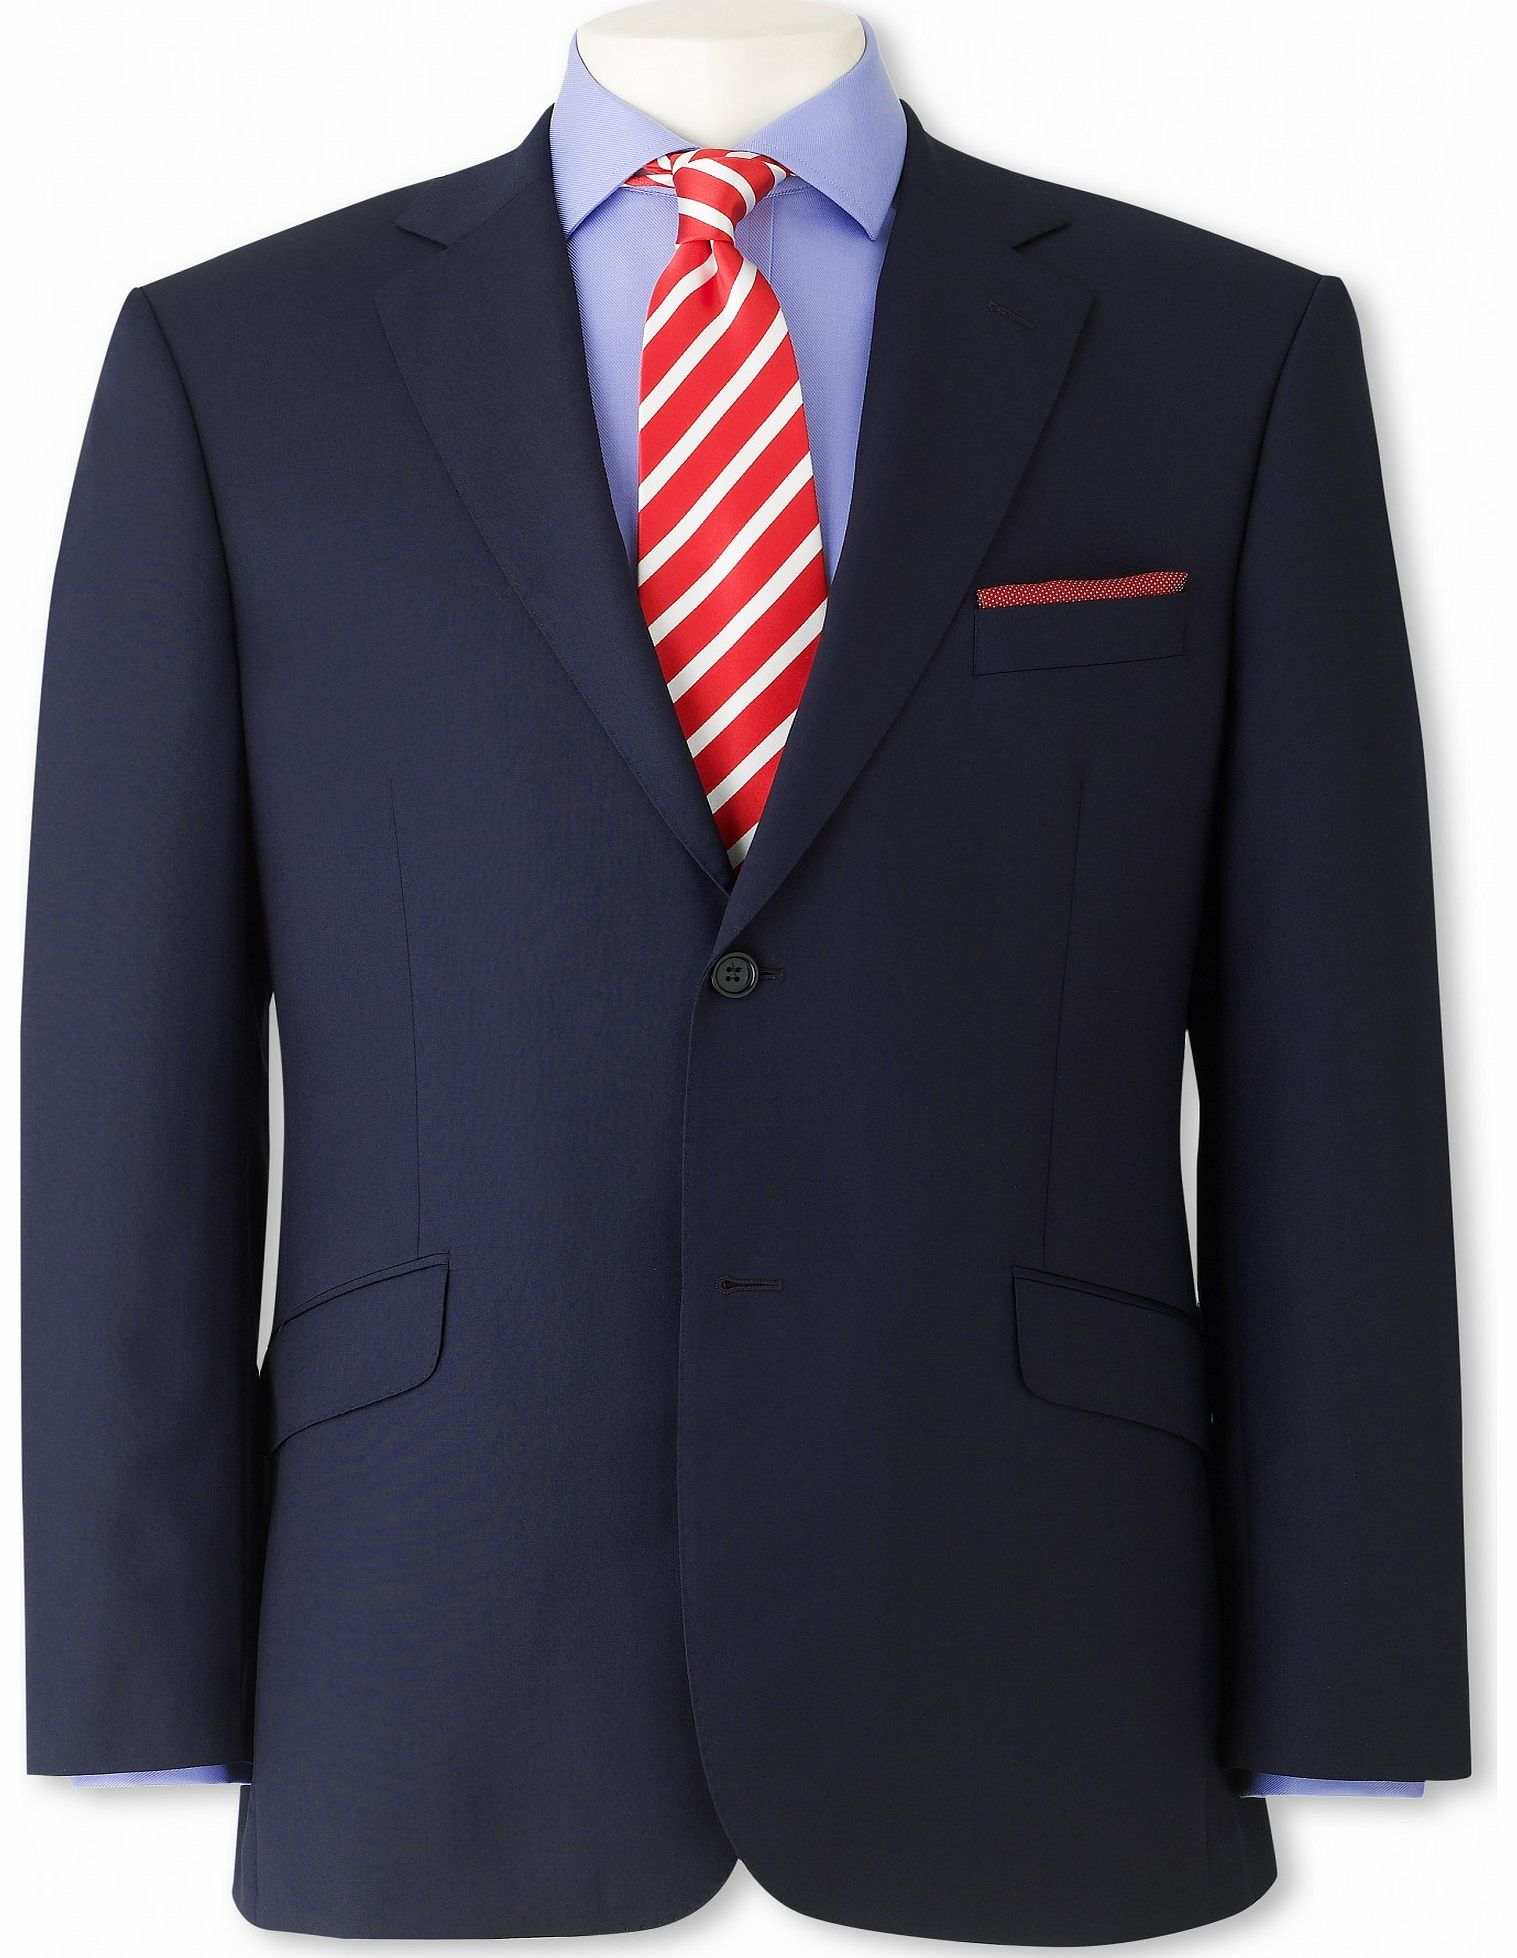 Savile Row Company Navy Plain Classic Fit Jacket 38`` Long